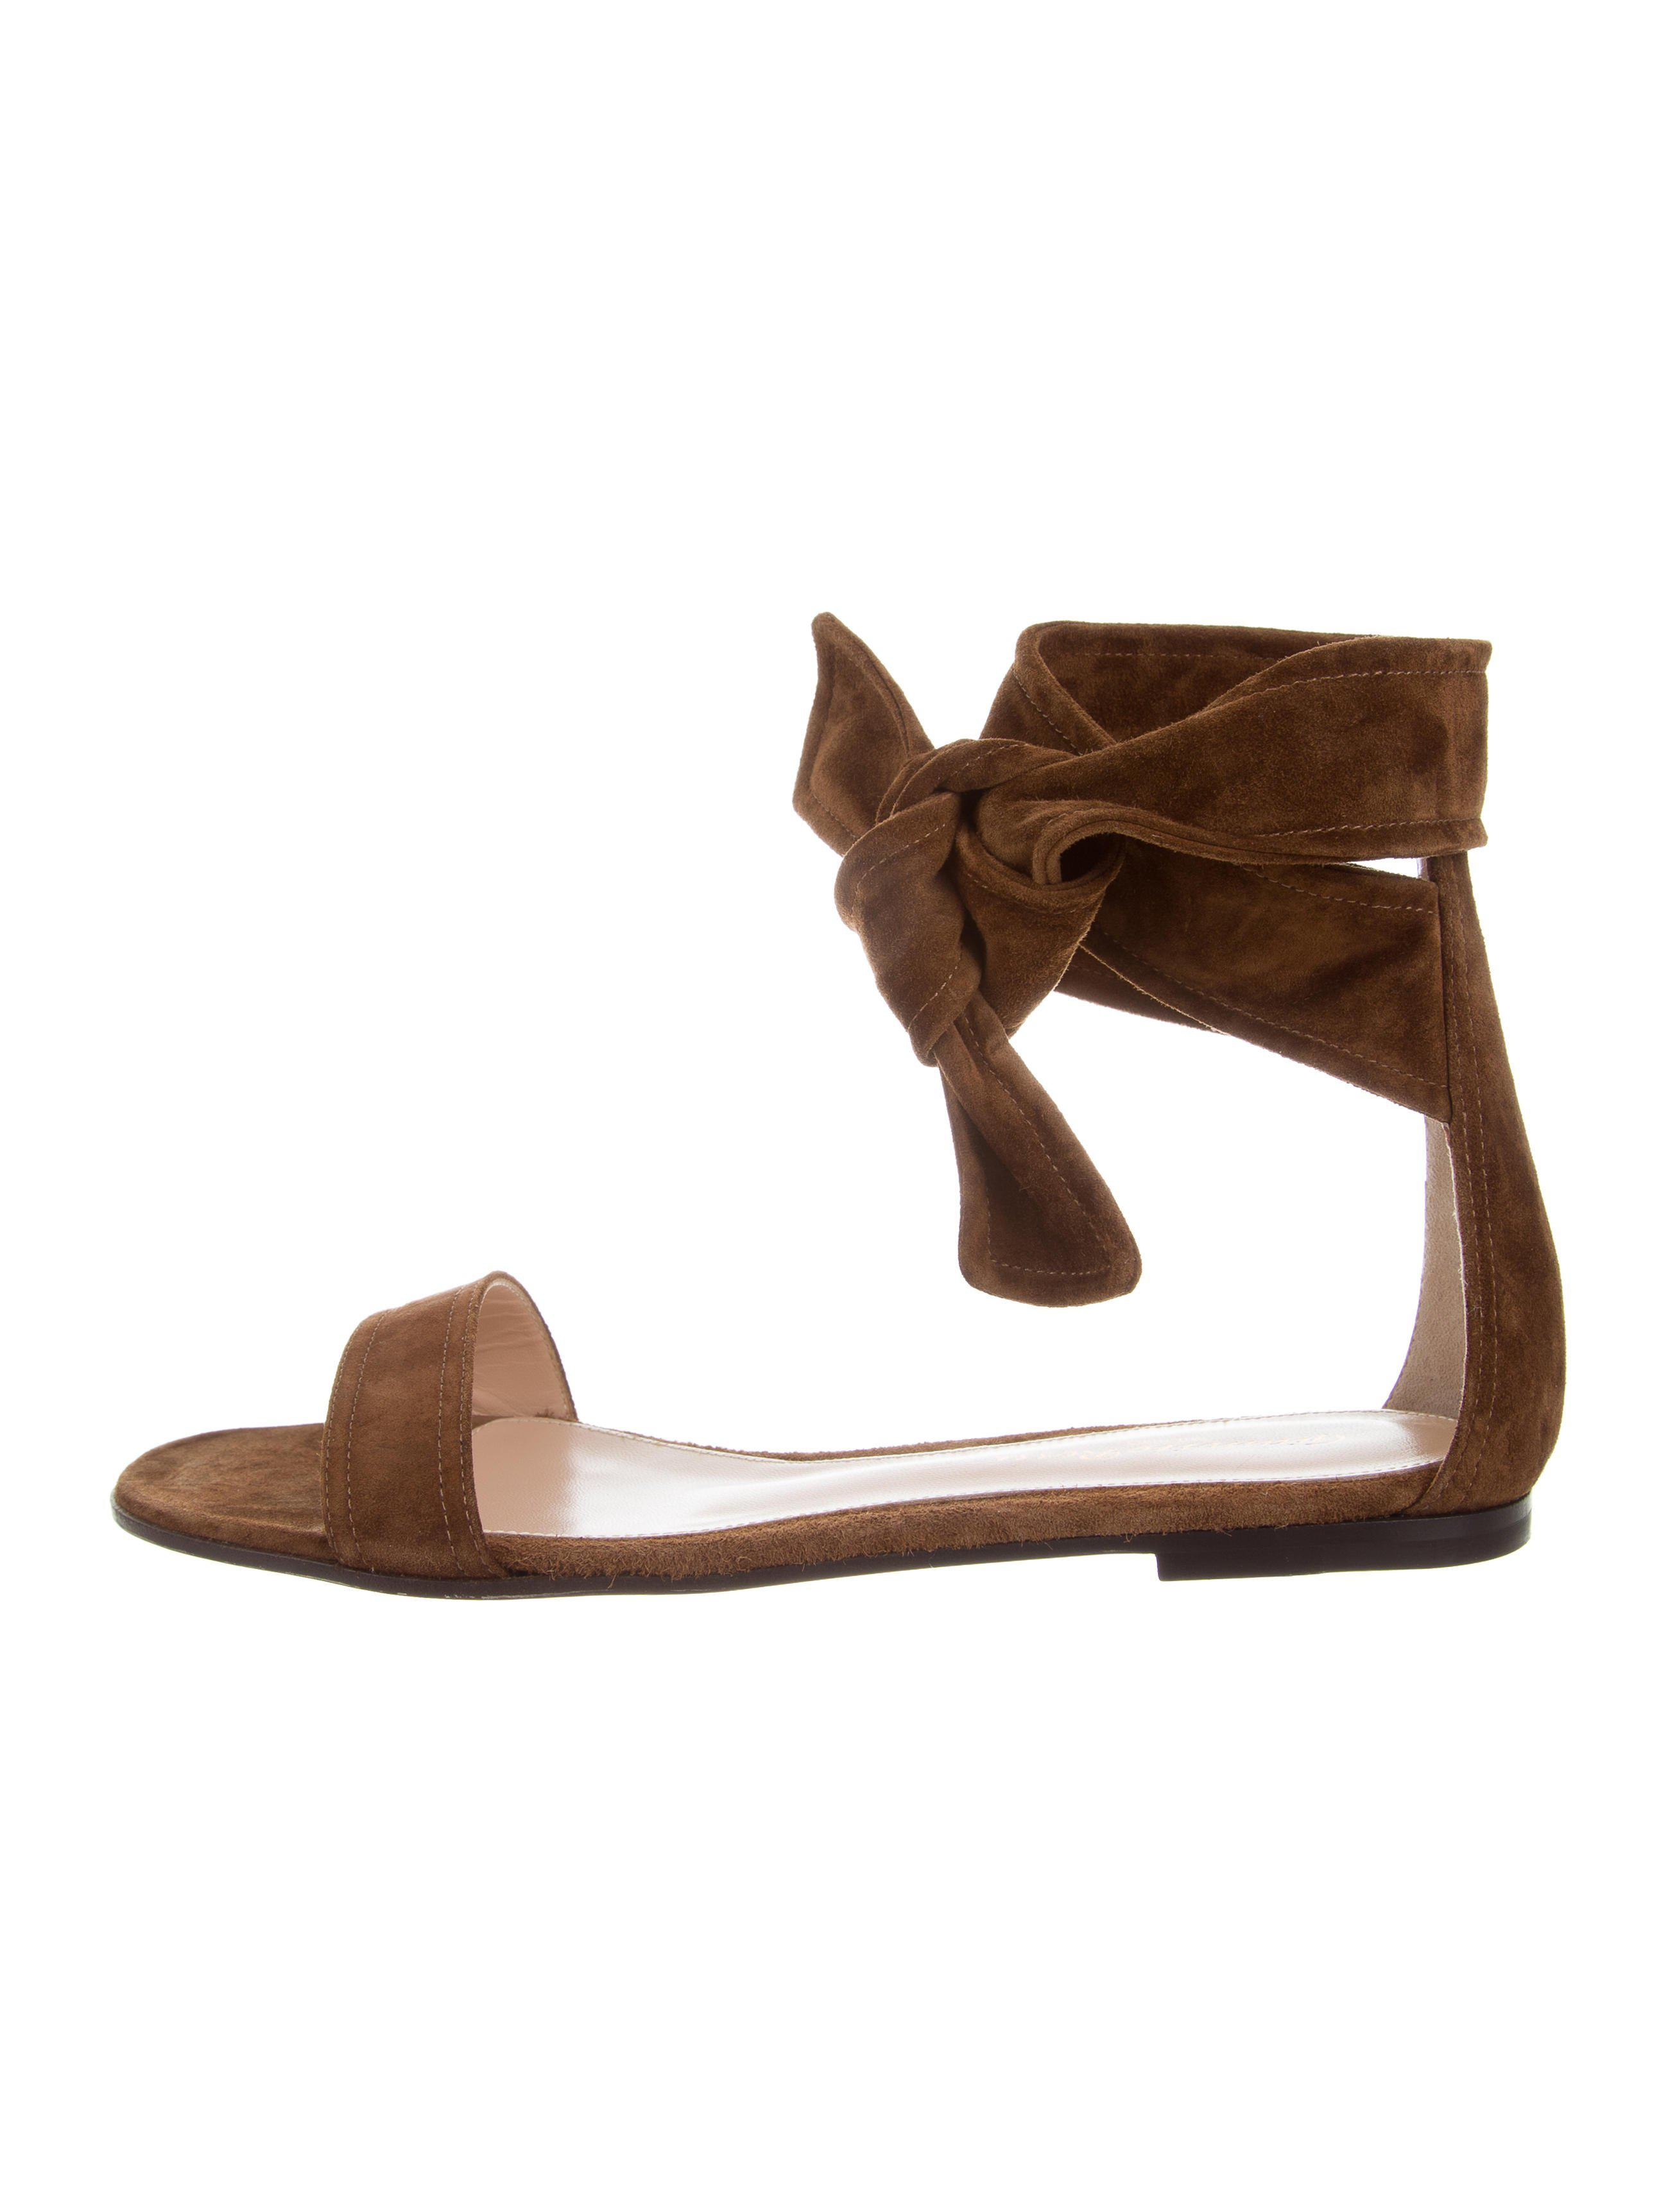 buy cheap find great outlet online Gianvito Rossi Suede Beverly Sandals w/ Tags cheap best buy cheap wide range of cheap sale geniue stockist wT0glk1